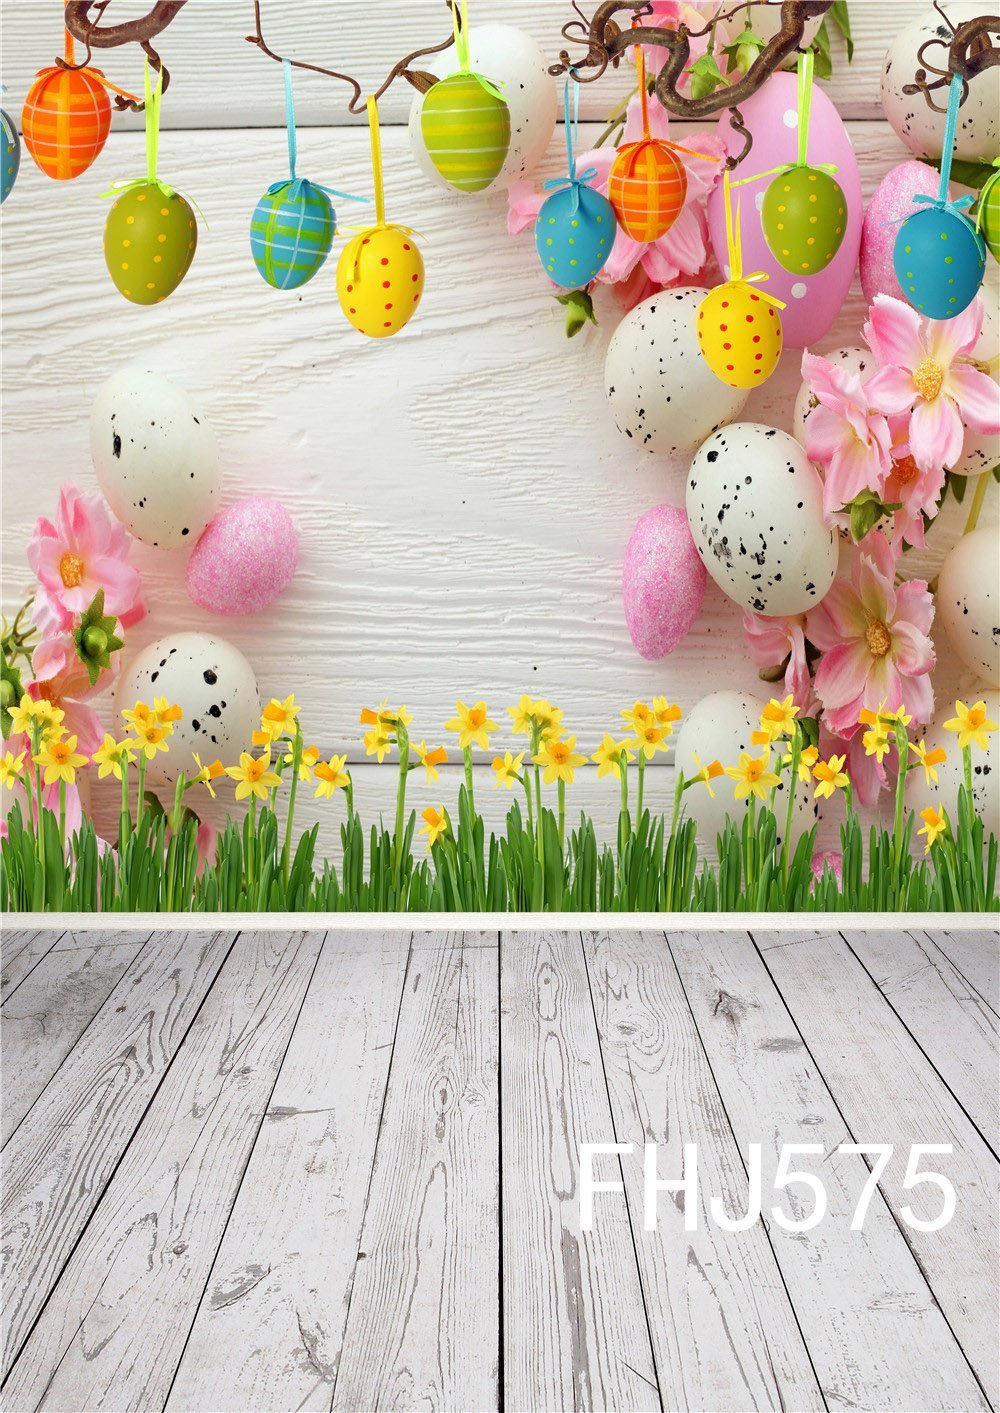 Company Easter Photography Backdrop Spring Photo Background 6x5 Fabric U.S